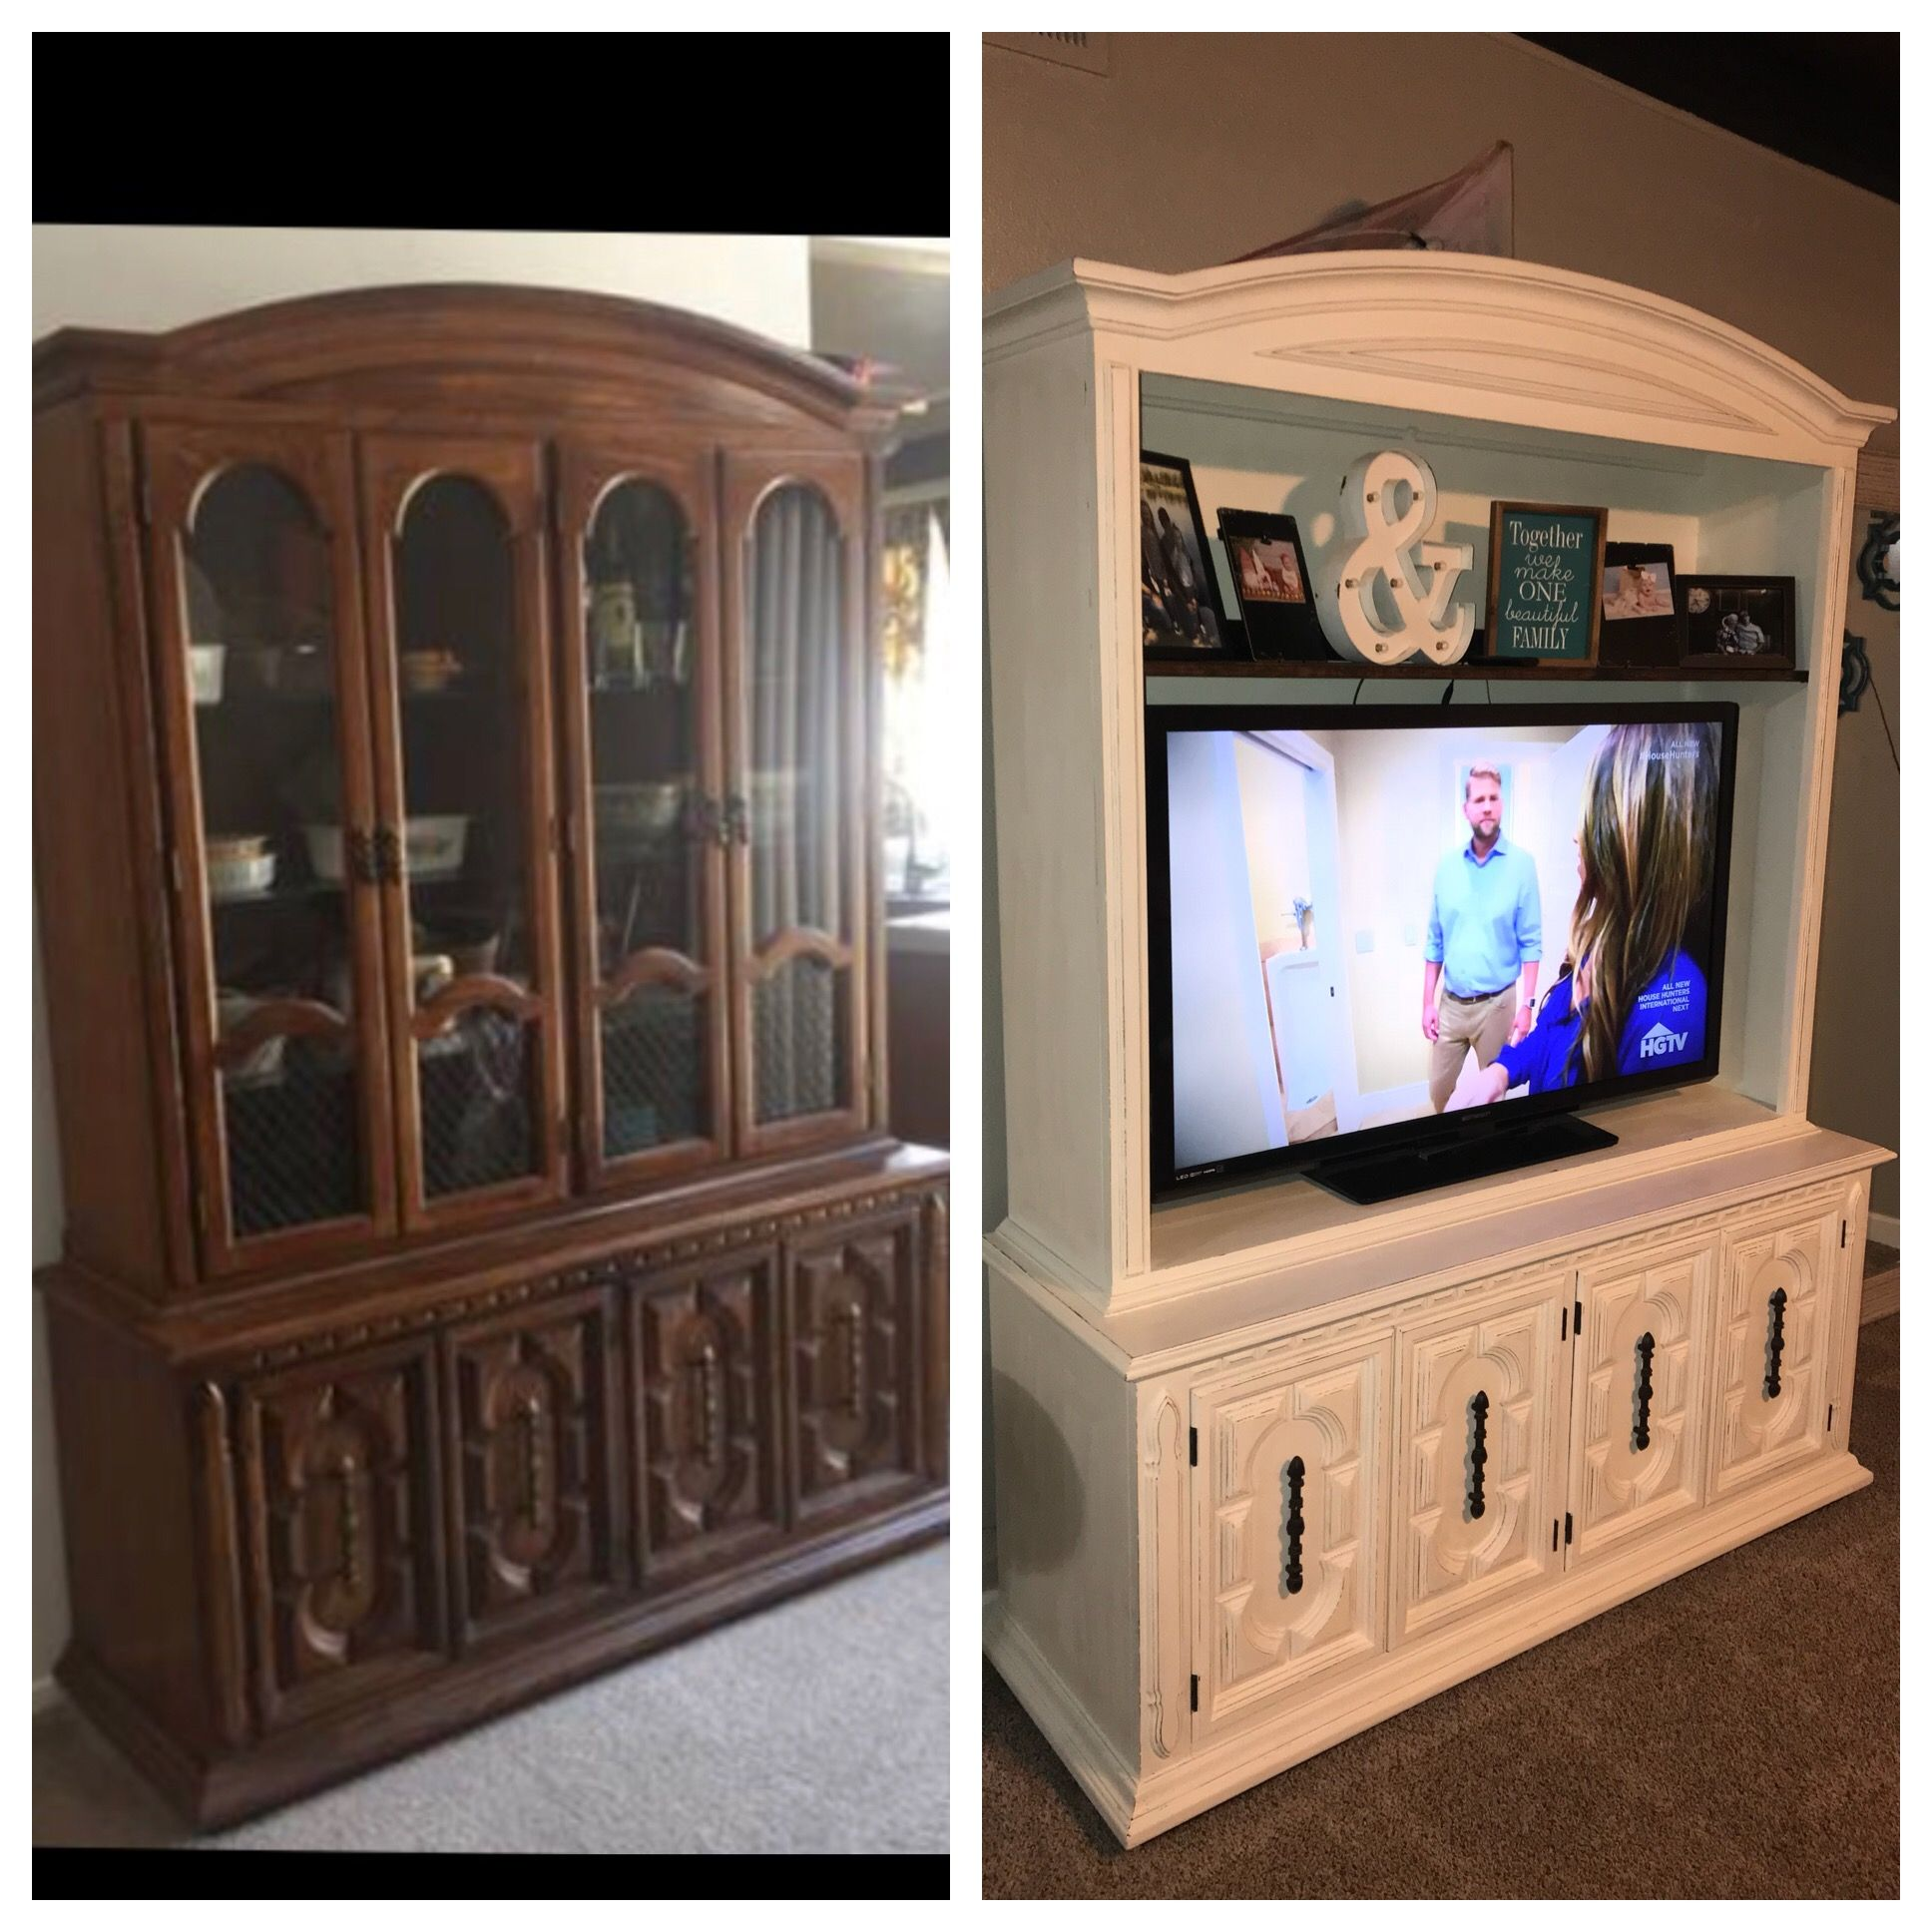 China Cabinet Turned Into Tv Stand Redo Furniture Upcycled Furniture Before And After Refurbished Furniture